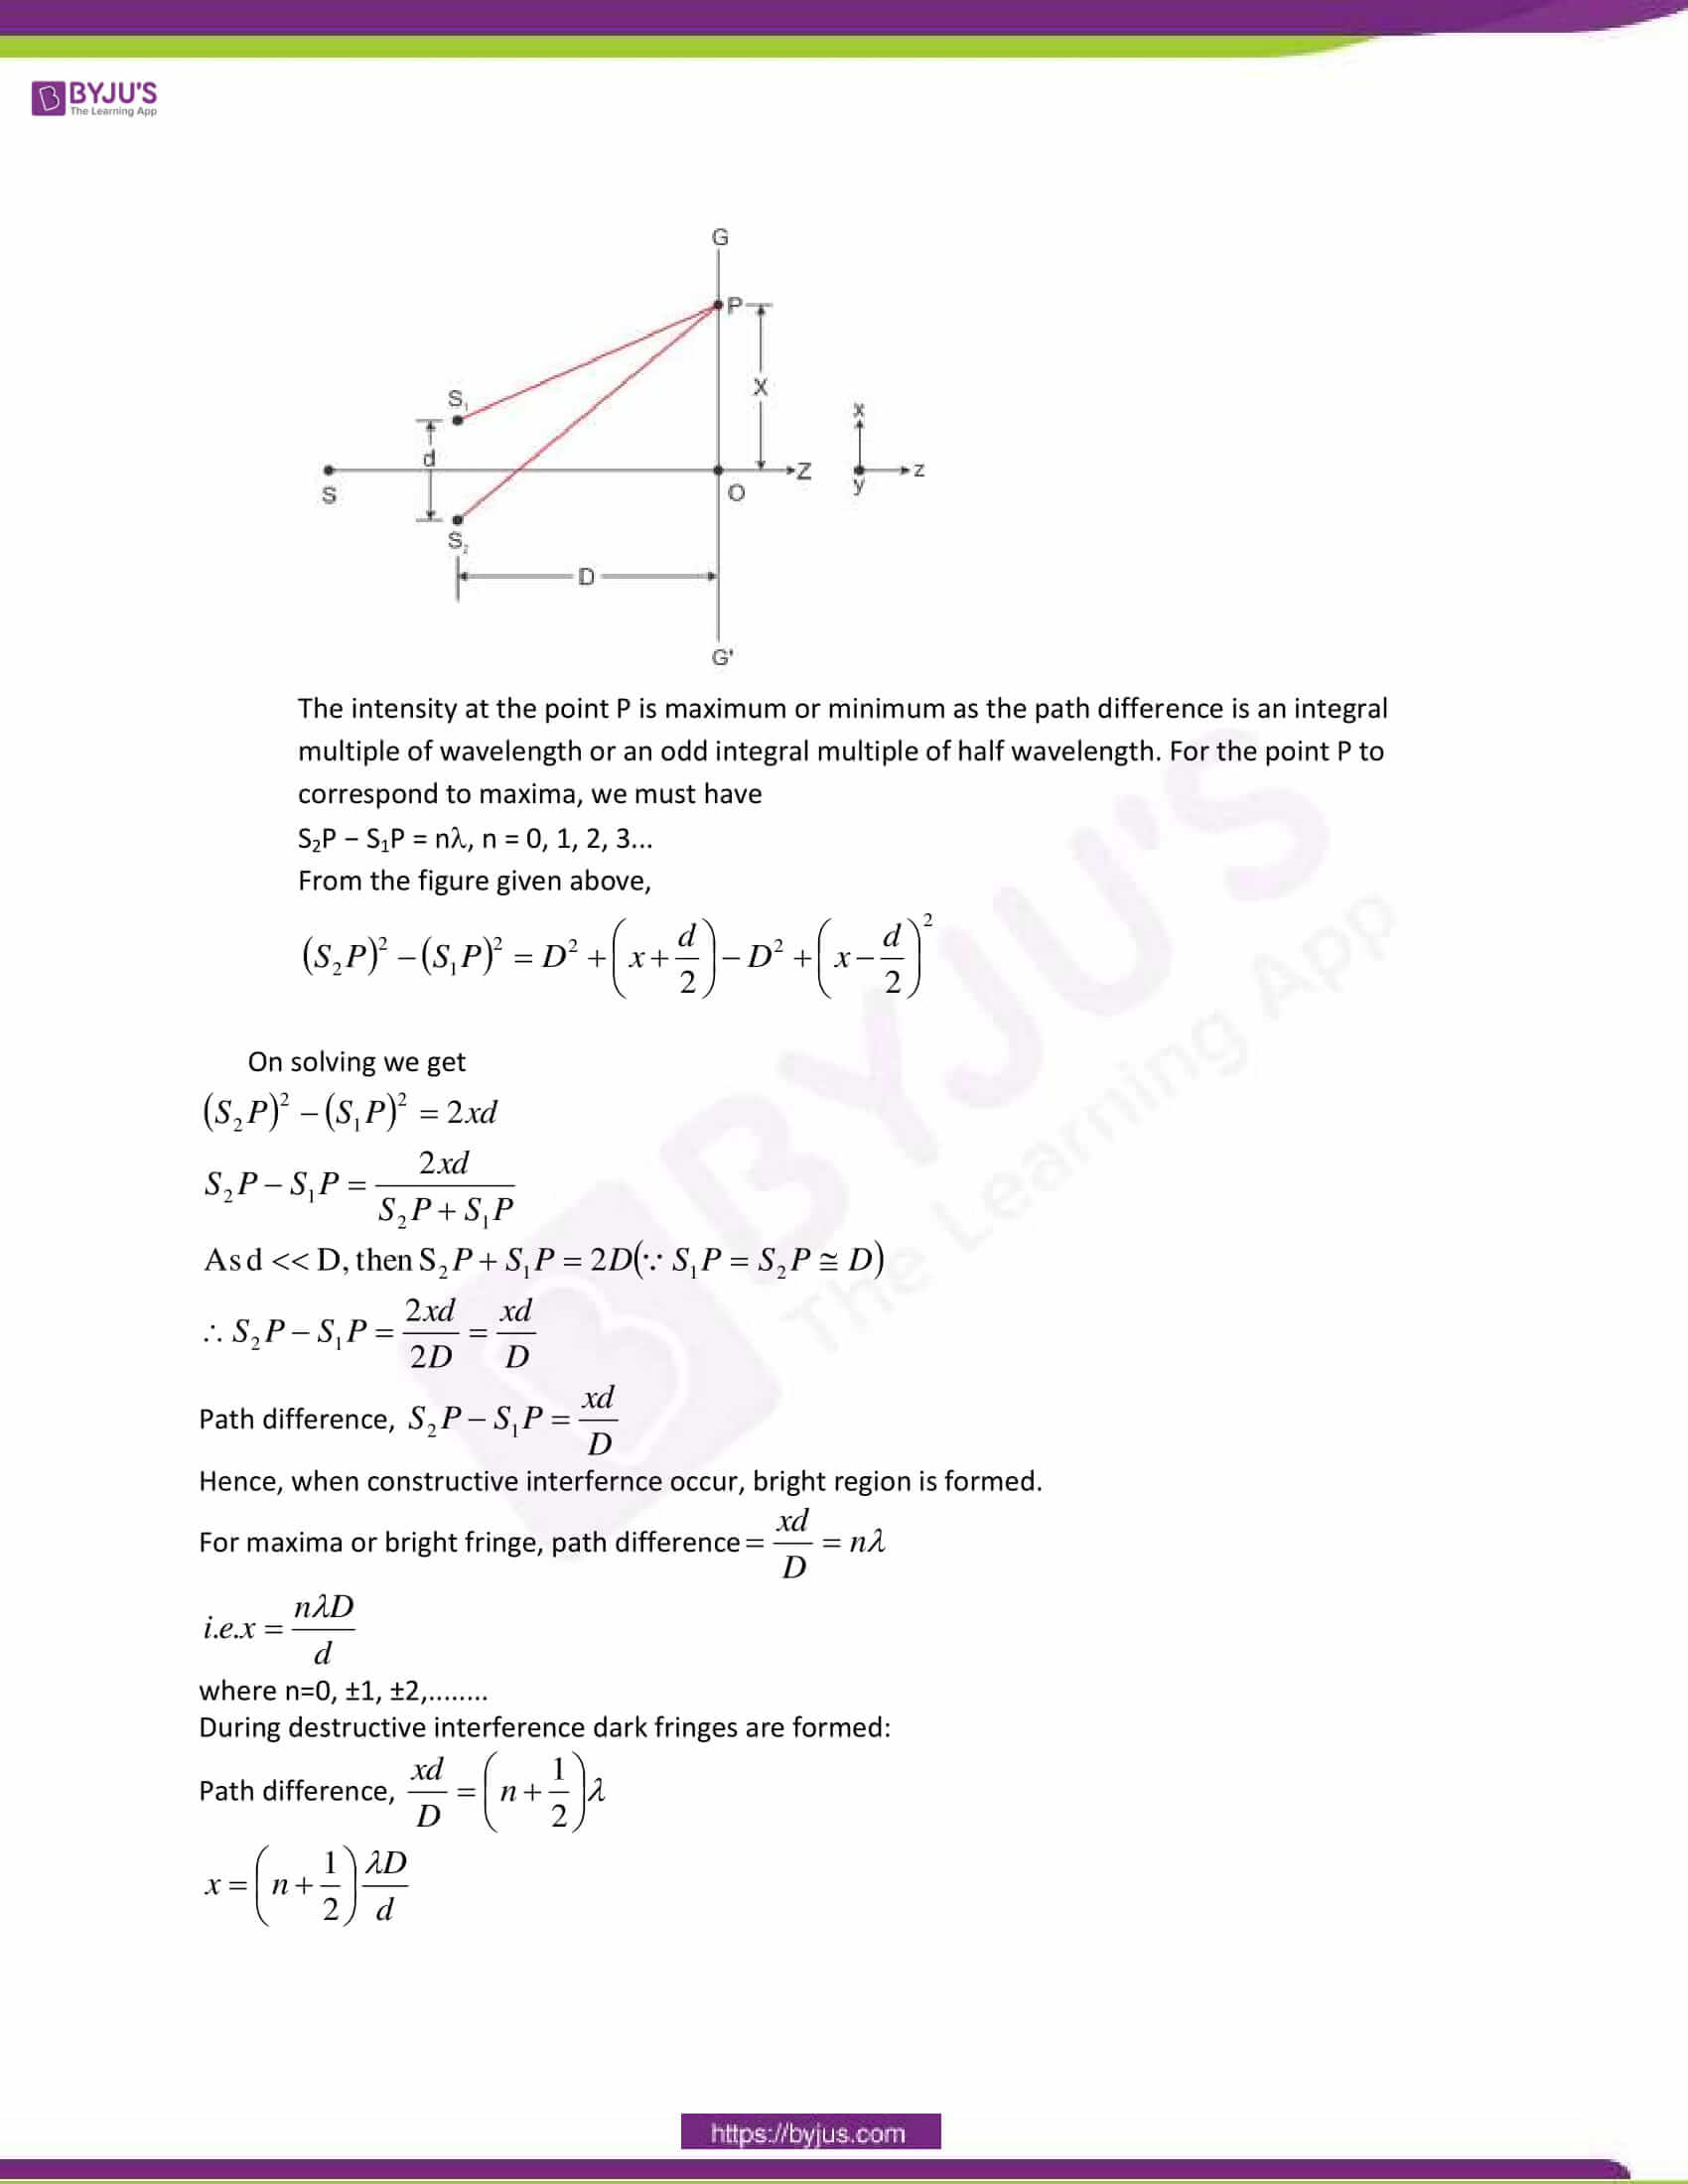 cbse class 12 physics sample paper solution set 1